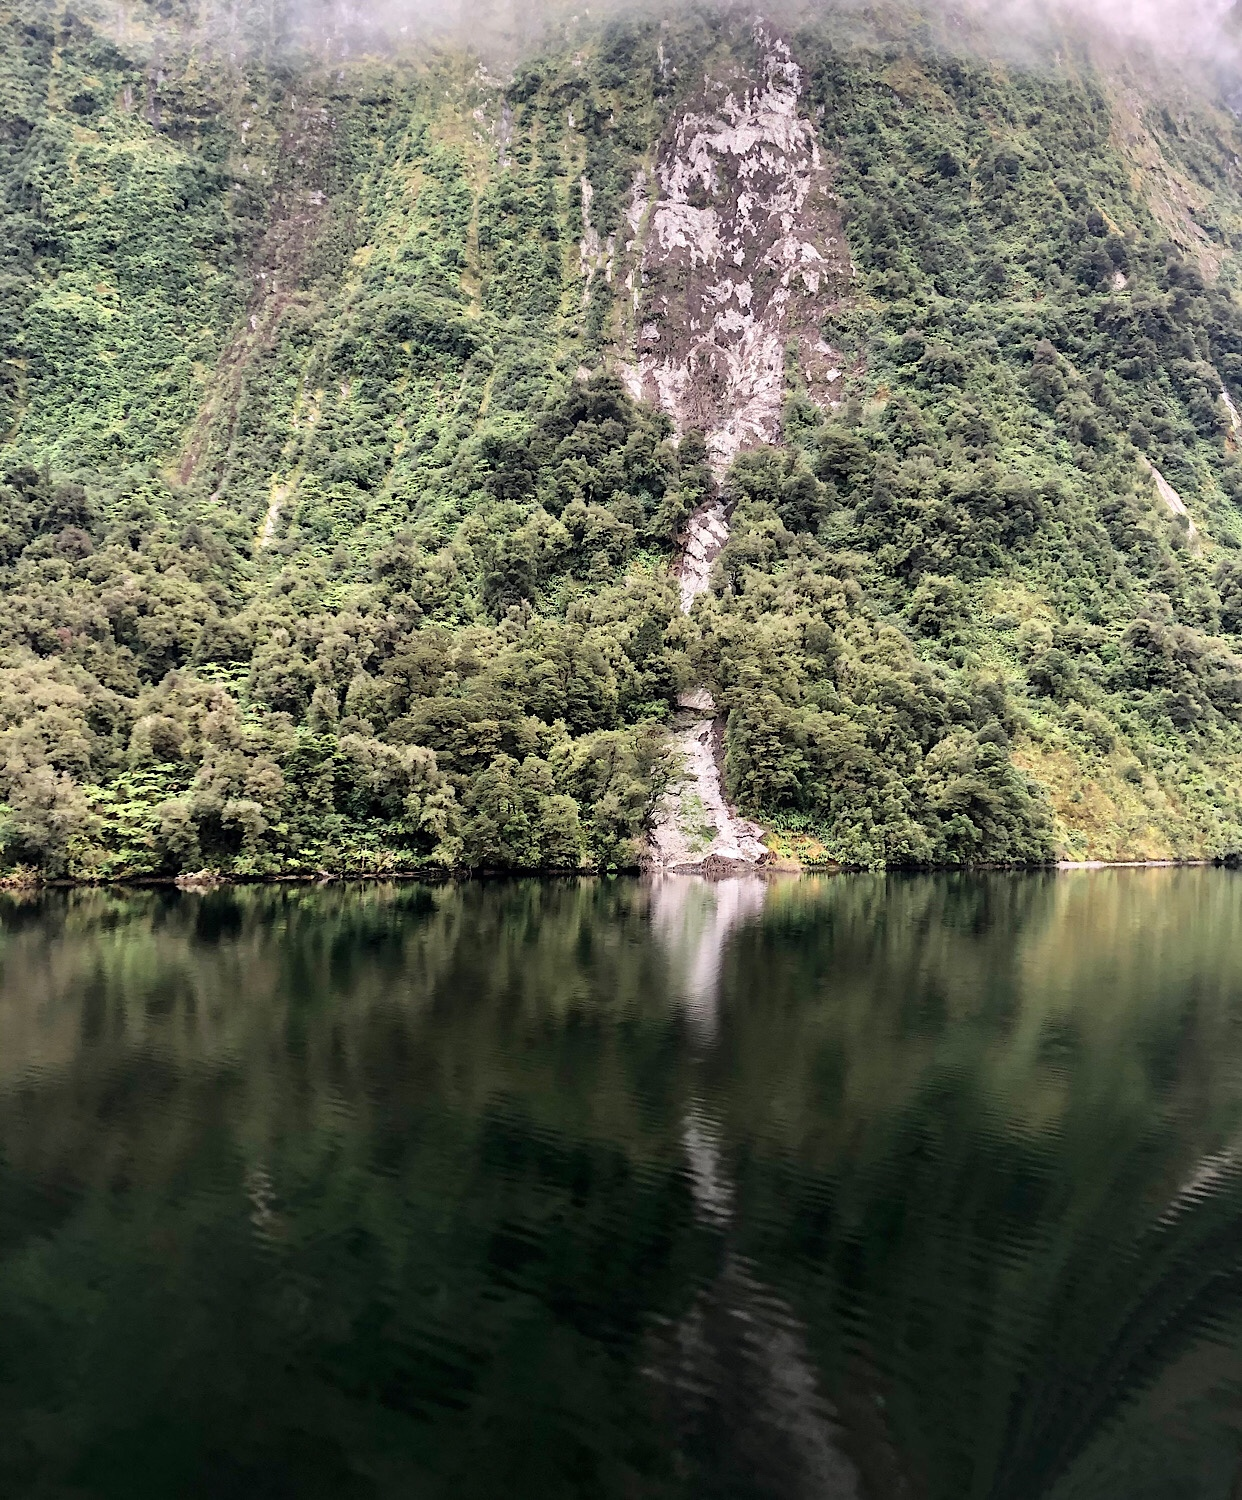 Tree avalanche scar at Doubtful Sound